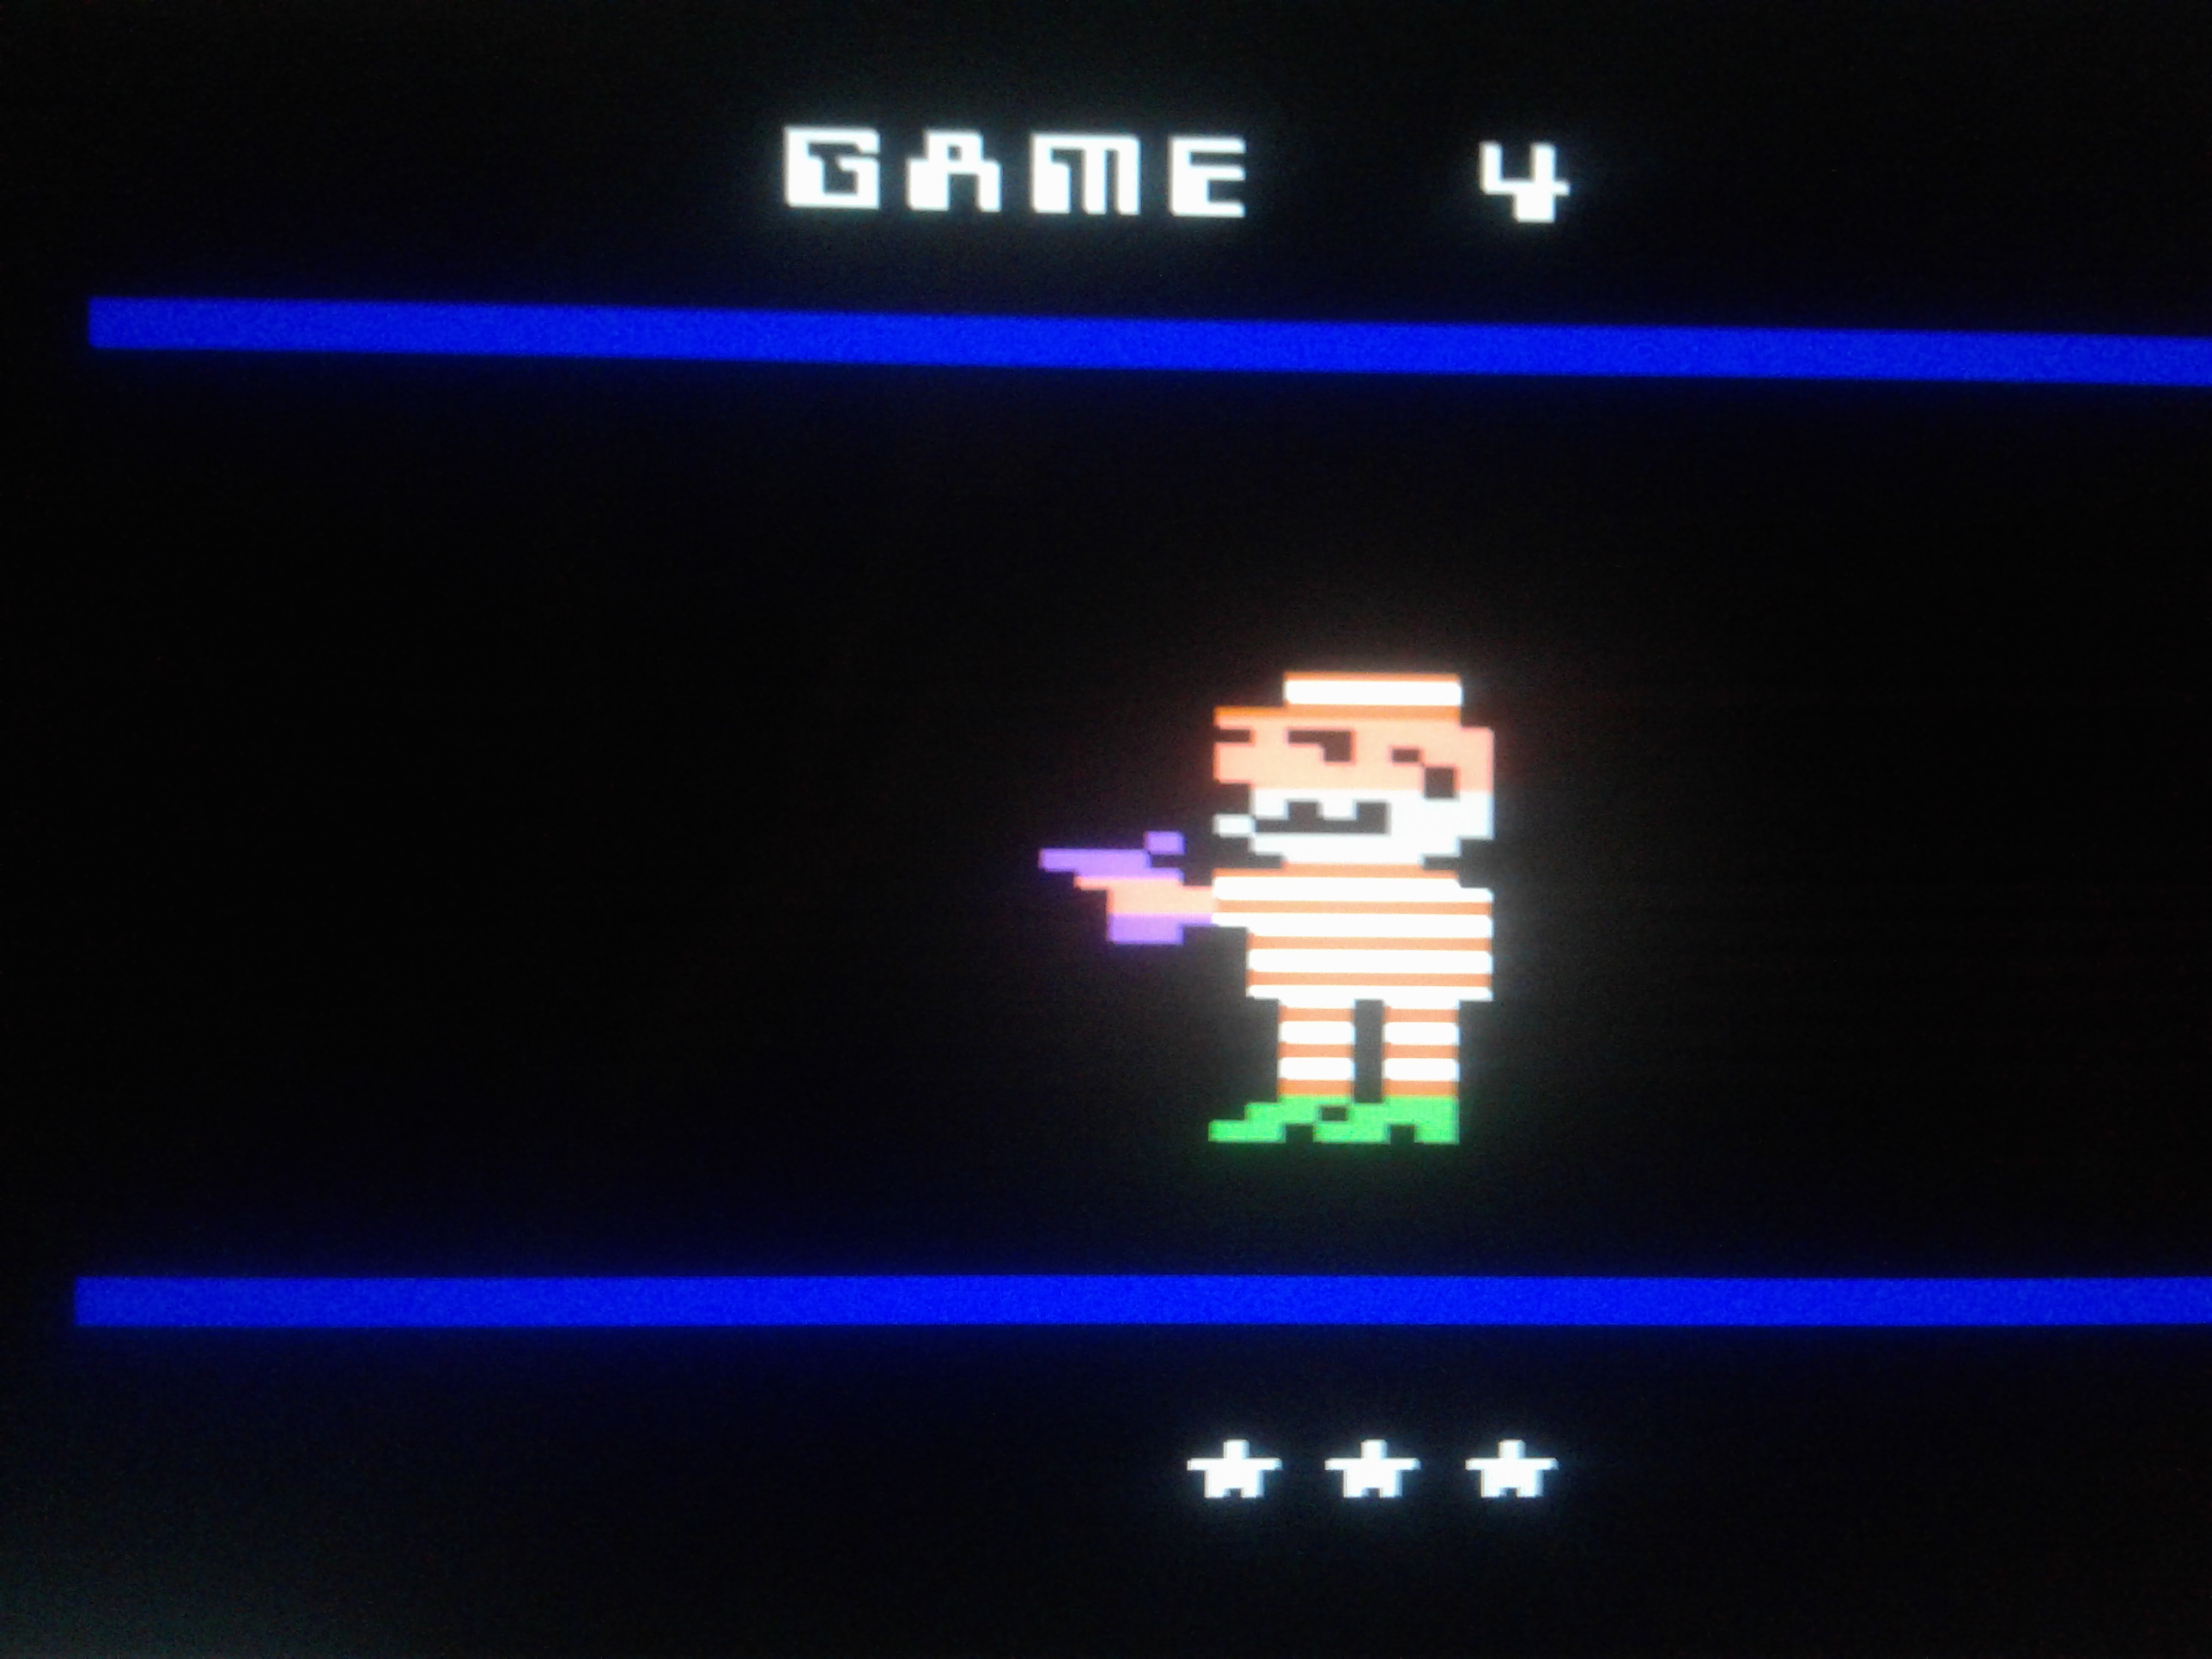 Mark: Squeeze Box: Game 4 [Difficulty AA] (Atari 2600 Emulated) 9,690 points on 2019-01-24 23:45:49